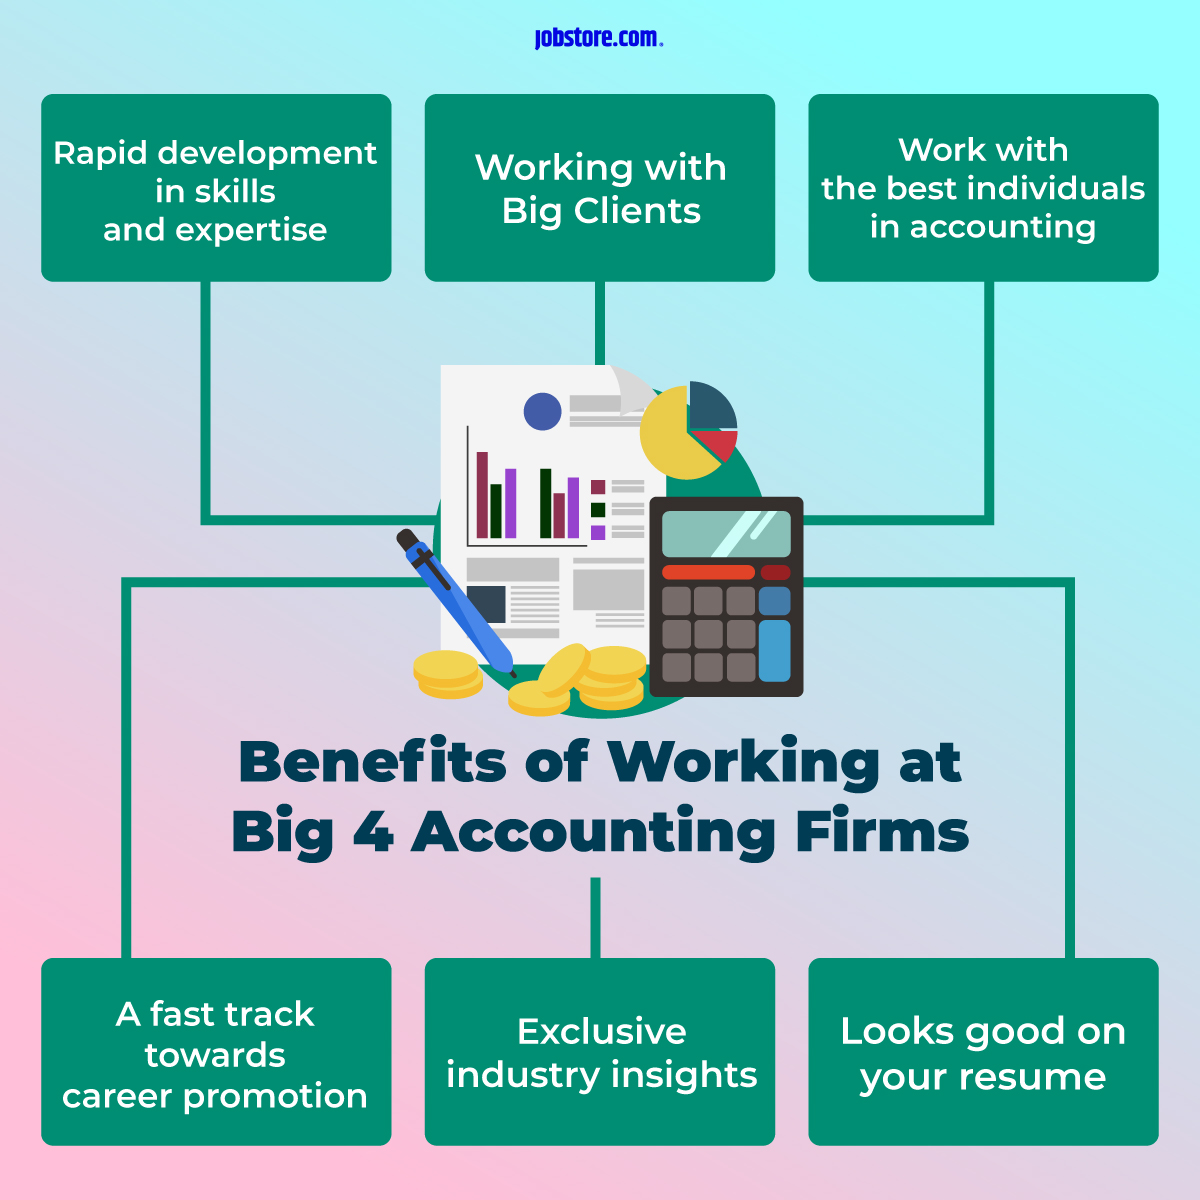 Jobstore Com On Twitter The Big 4 Firms Of Accounting And Audit Are The Dream For Many Aspiring Accountants For Their Career Path Read More Https T Co Mninedtpnx Don T Forget To Visit Https T Co R3wg2sw0e1 For